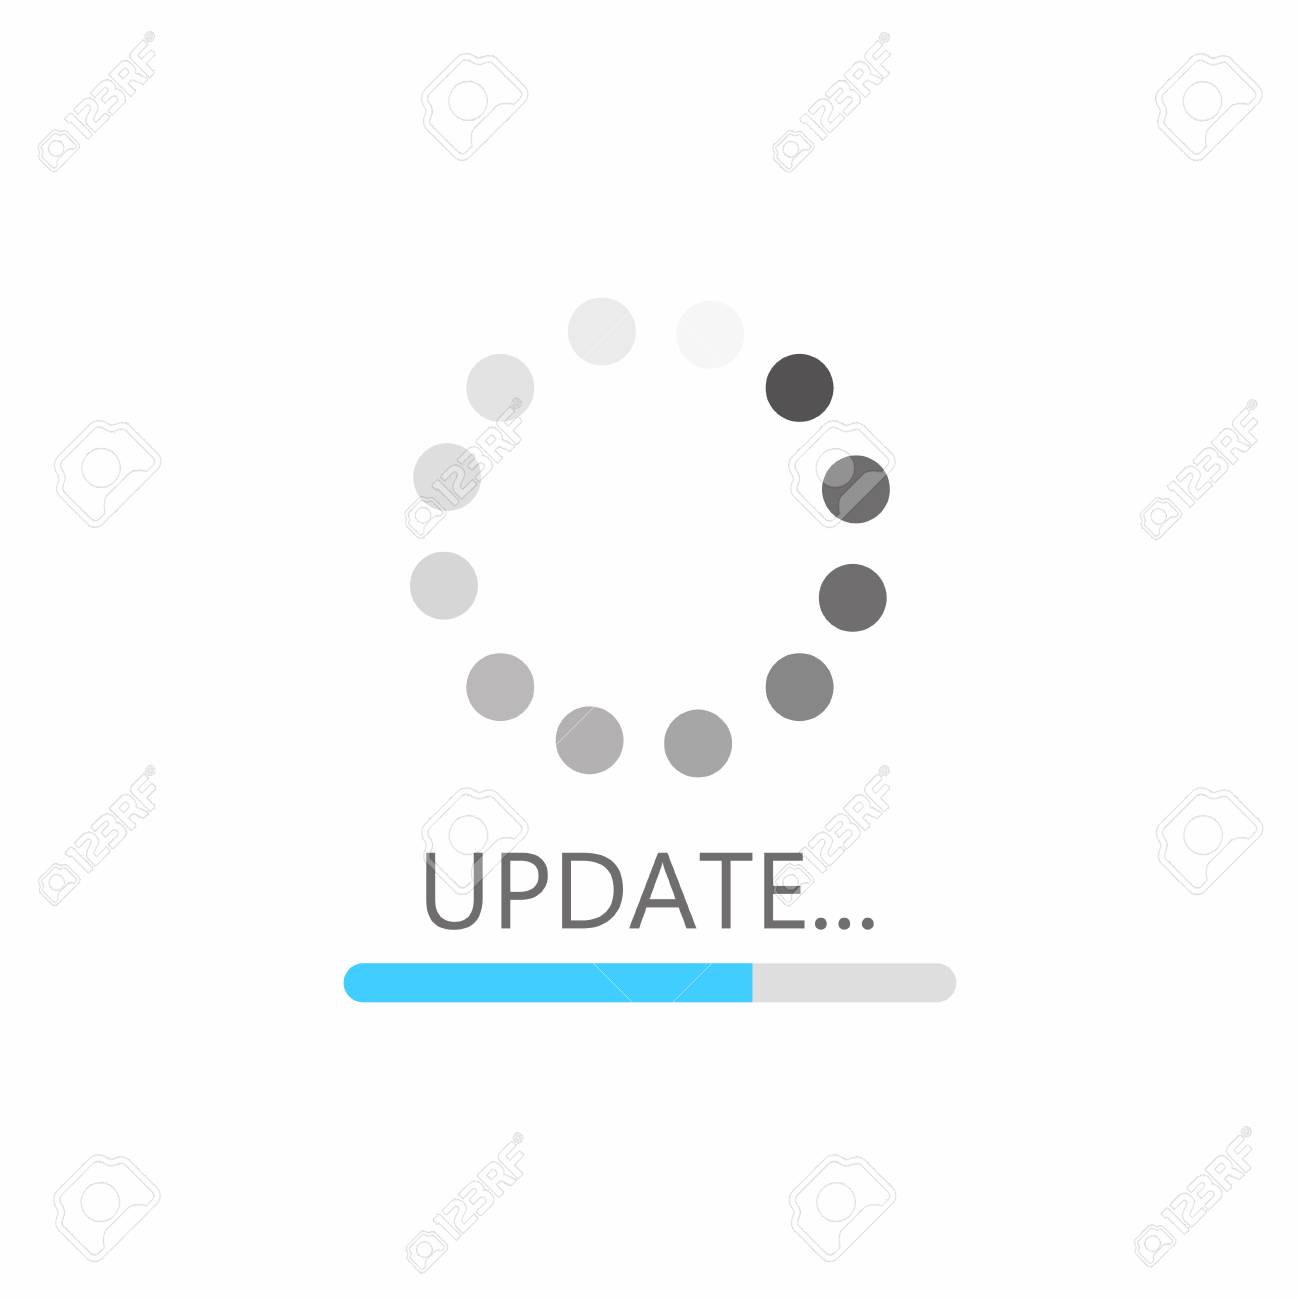 Update icon. System software upgrade concept, loading bar. Vector - 85186921